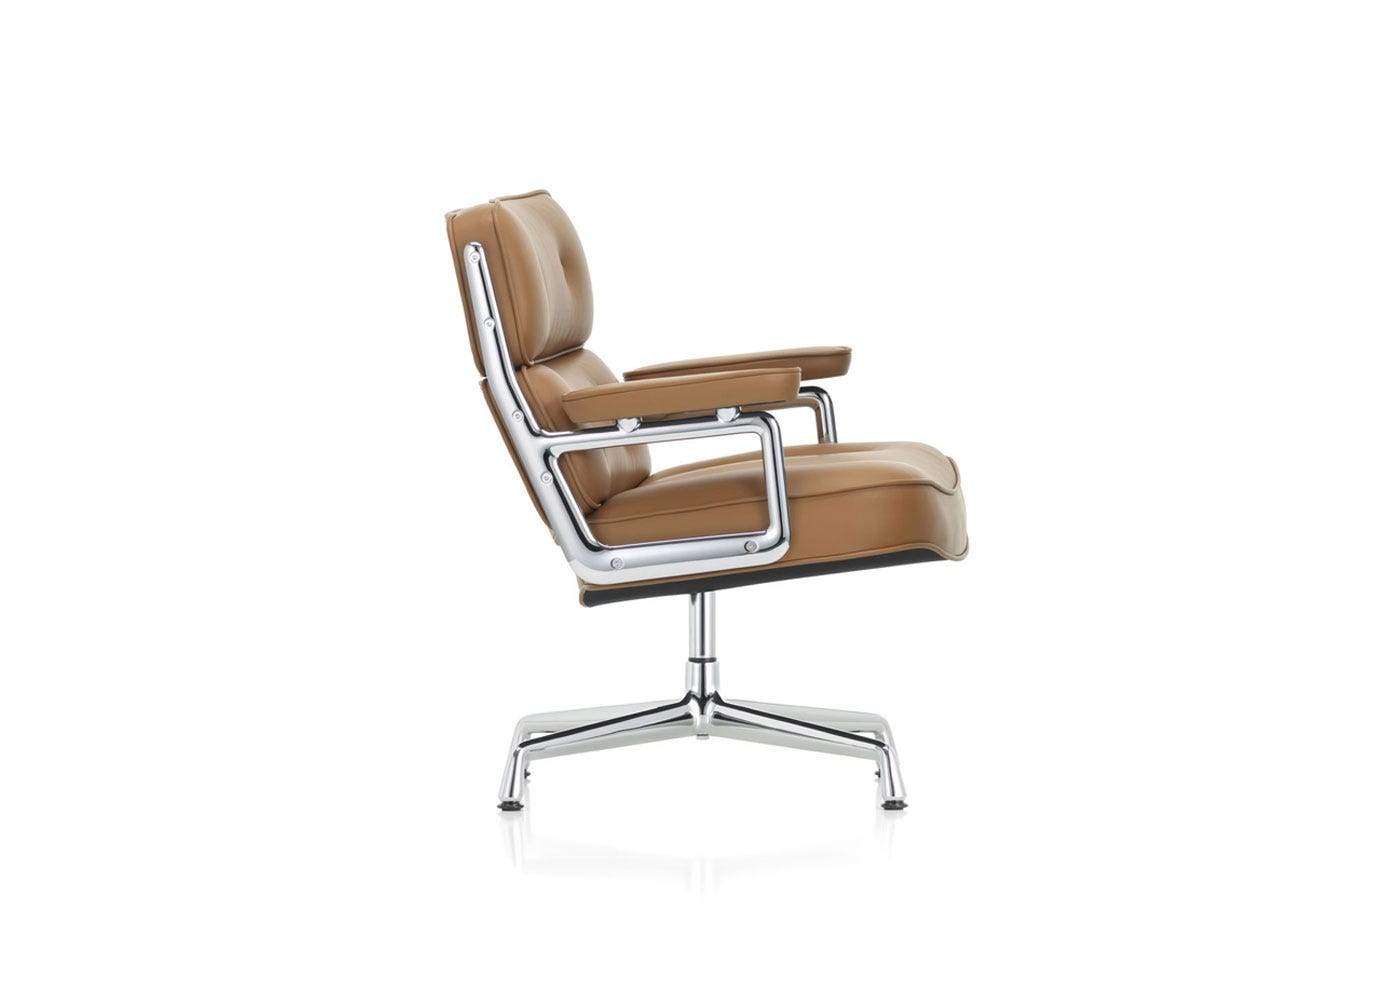 As Shown: Lobby Swivel Chair 105 With Armrests Side